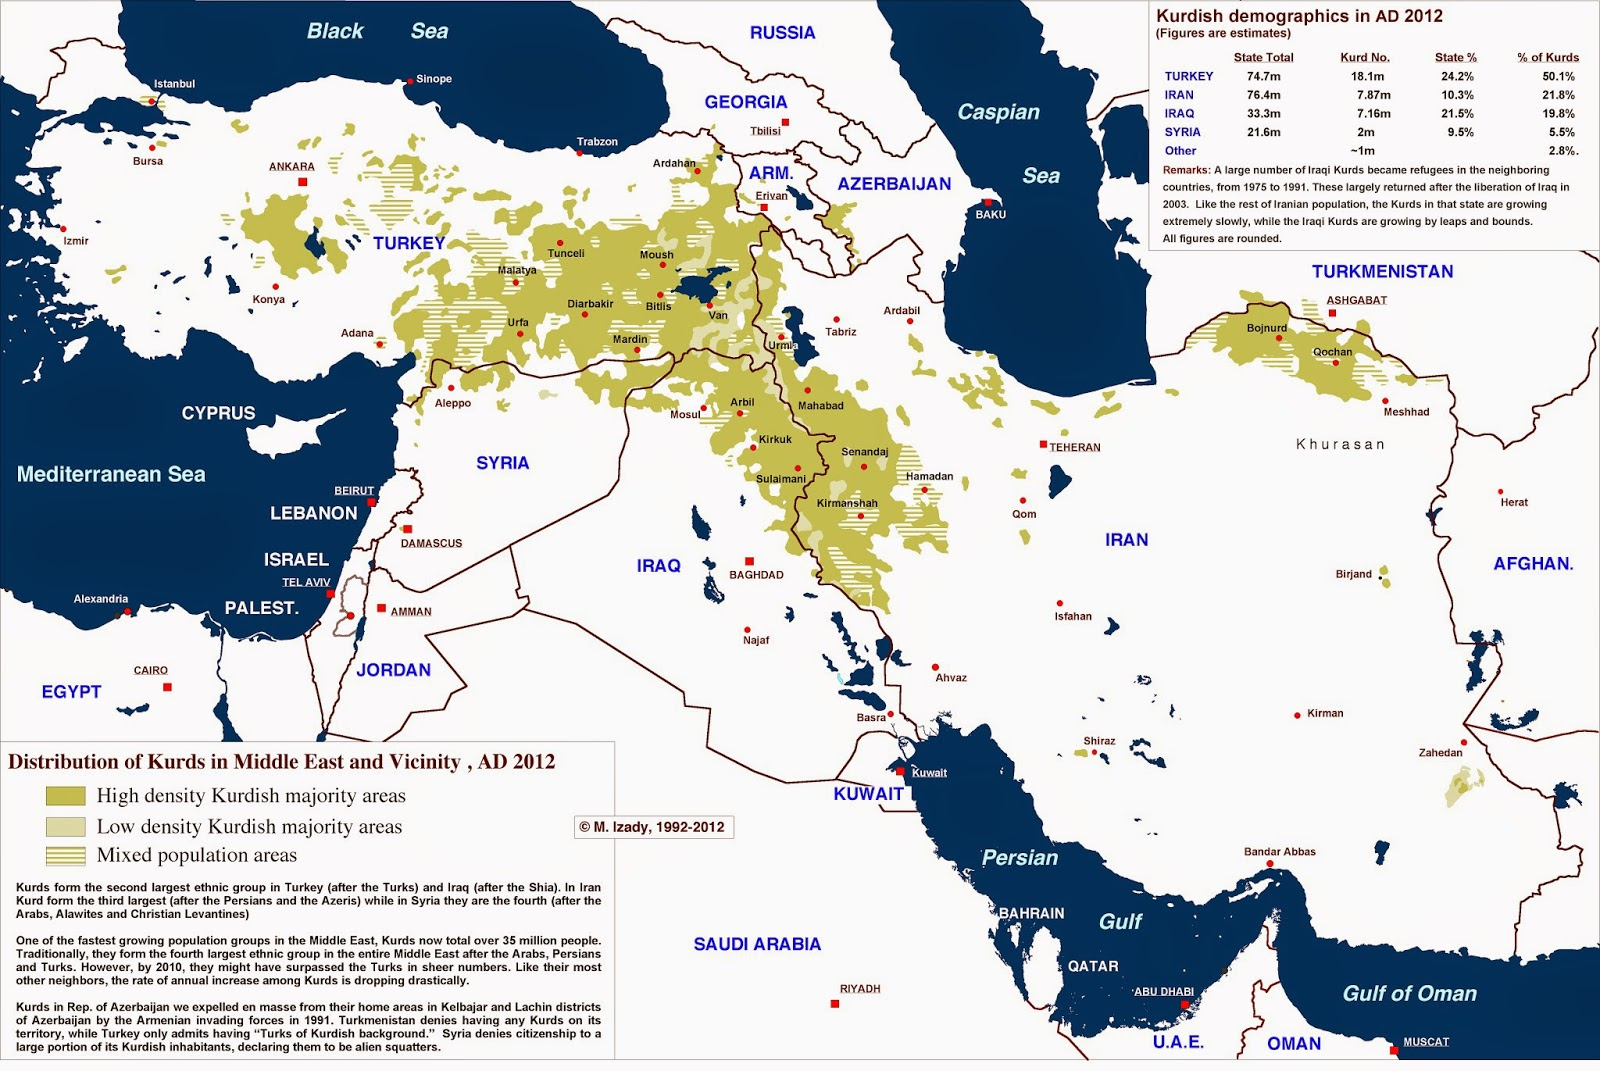 map of kurdish populations throughout syria iraq iran and turkey